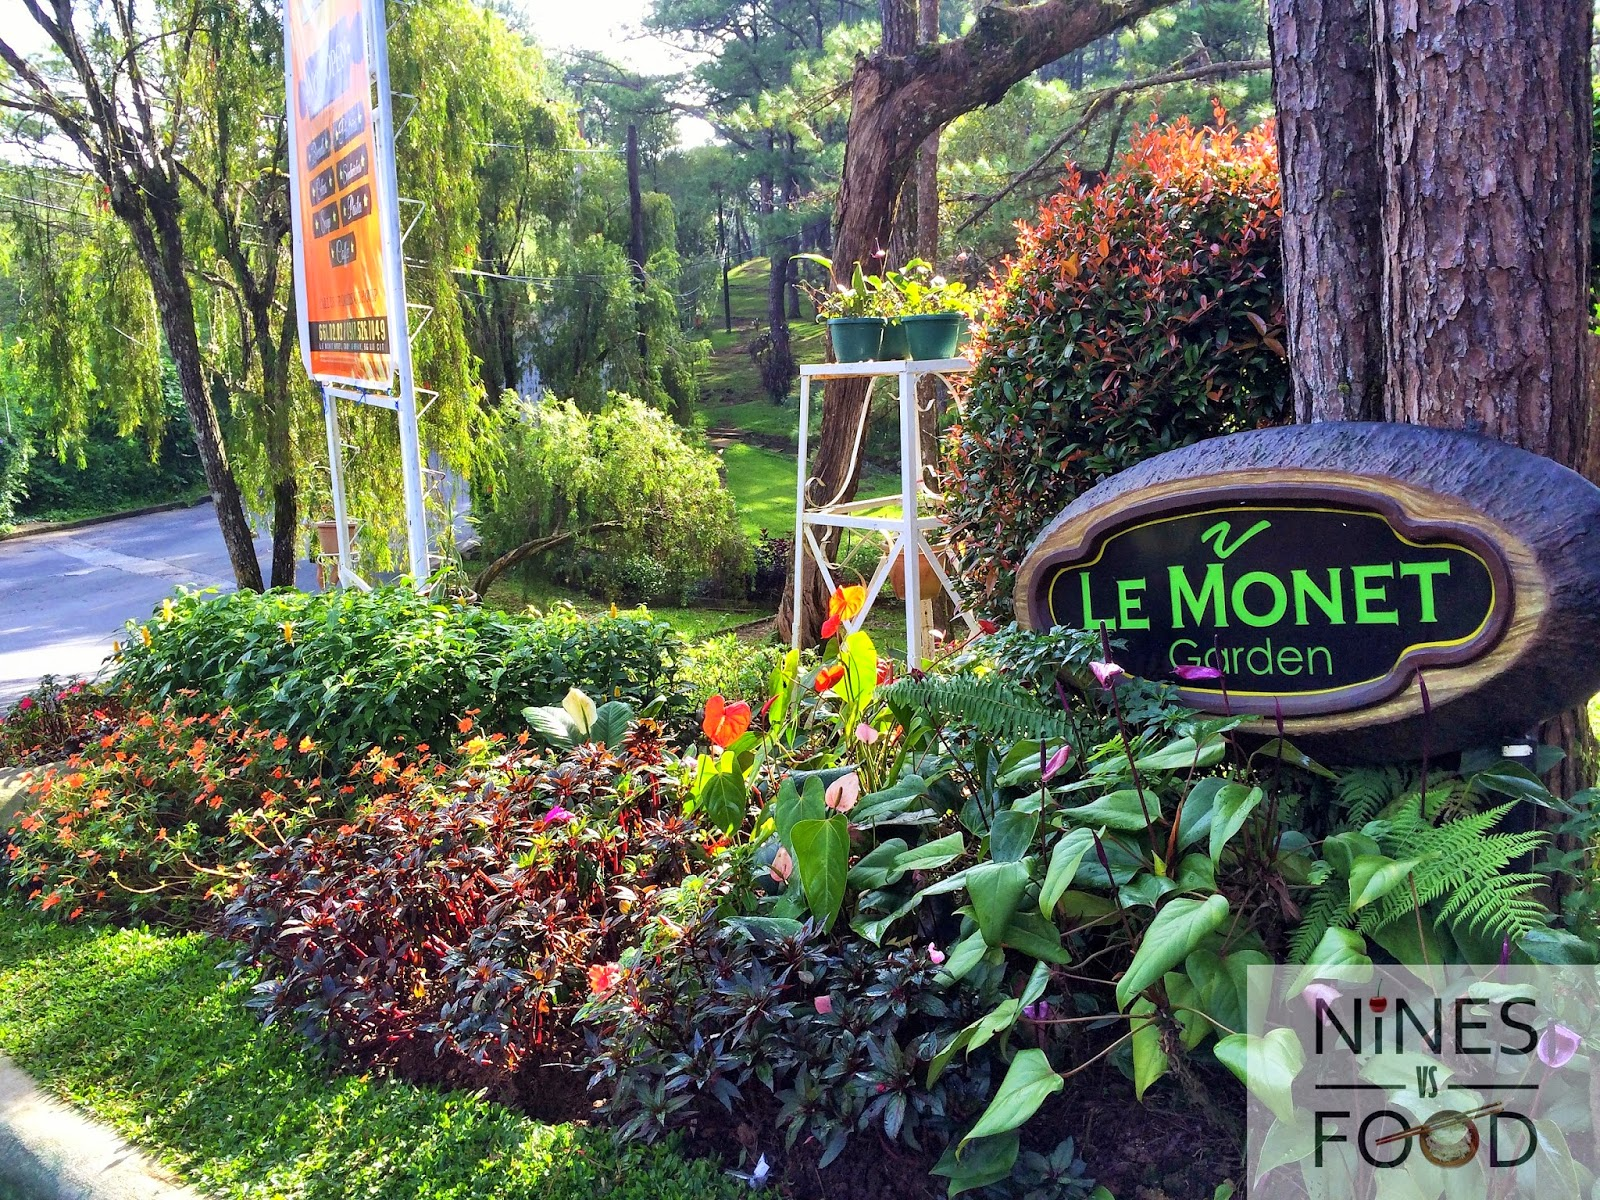 Nines vs. Food - Le Monet Hotel What To Do-13.jpg